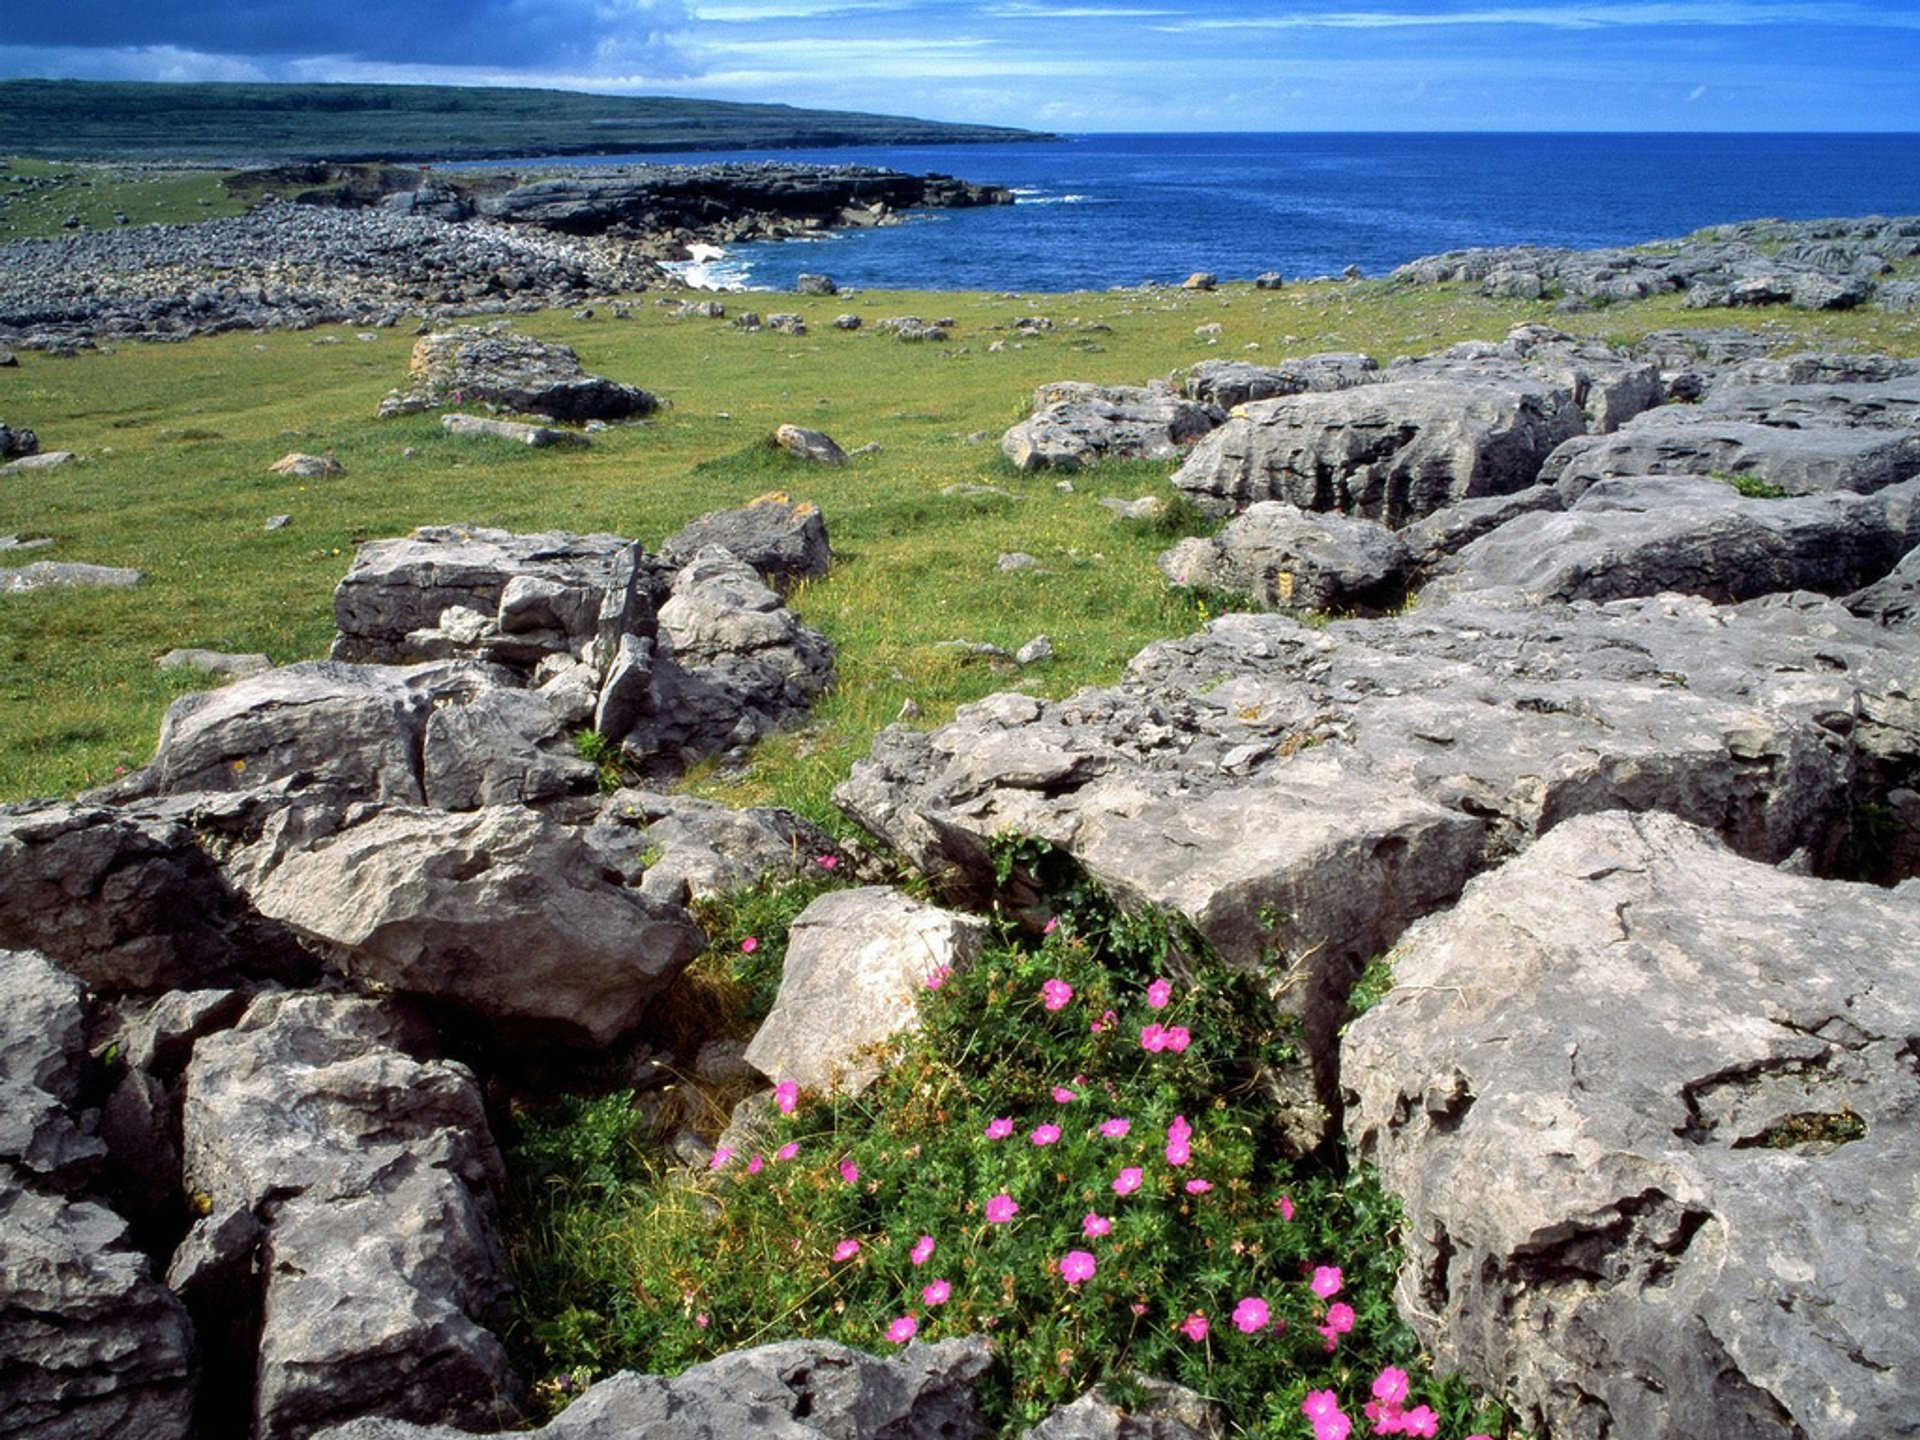 Wildflowers of the Burren 2020